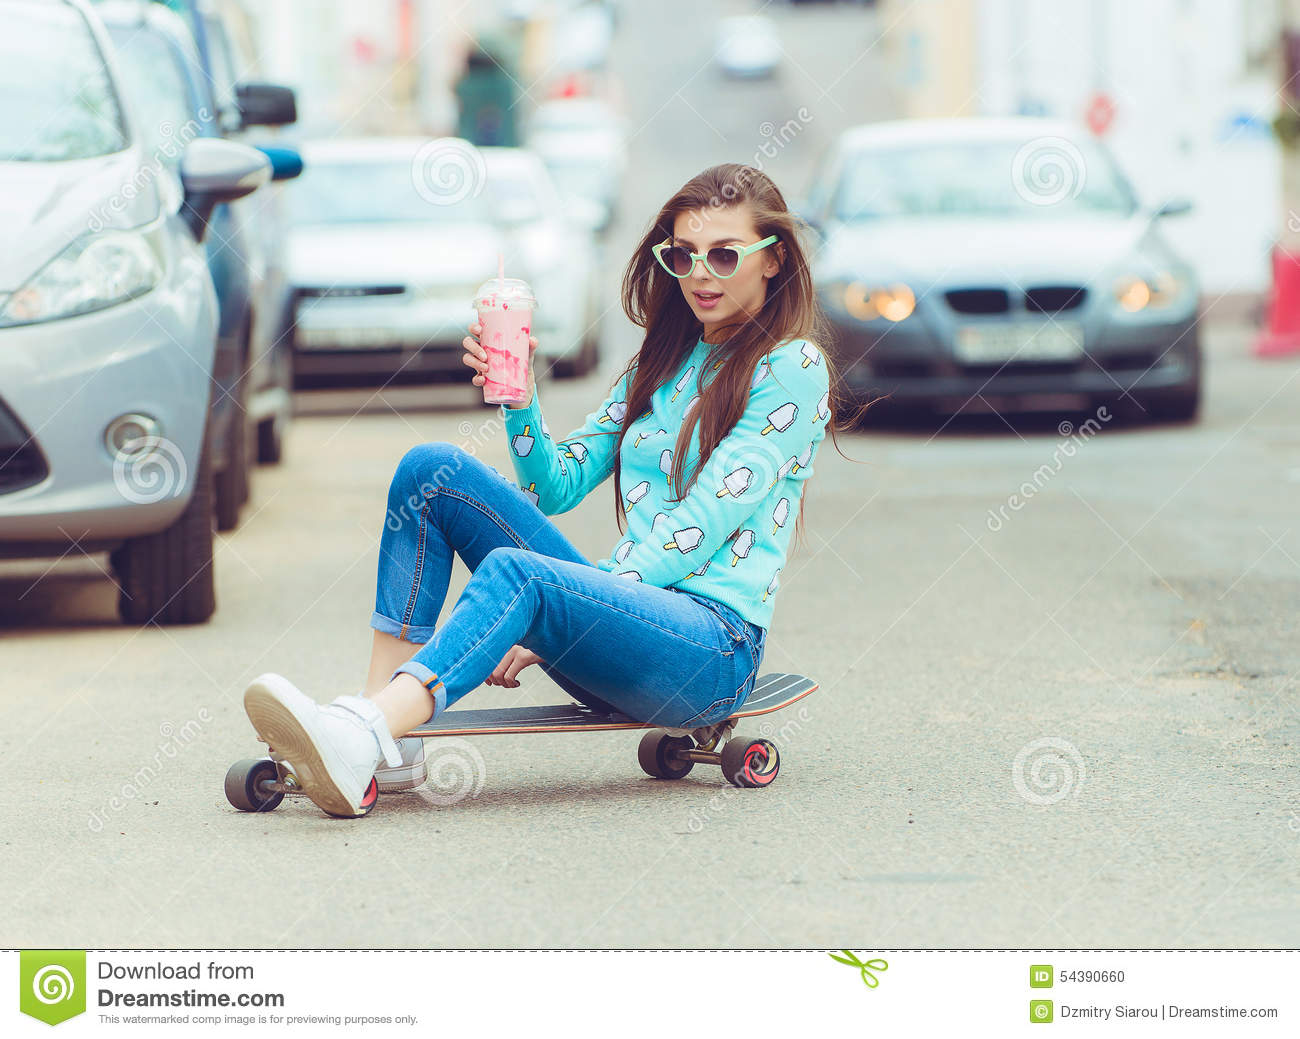 ecbe021c0d2 Beautiful Young Woman Posing With A Skateboard Stock Photo - Image ...